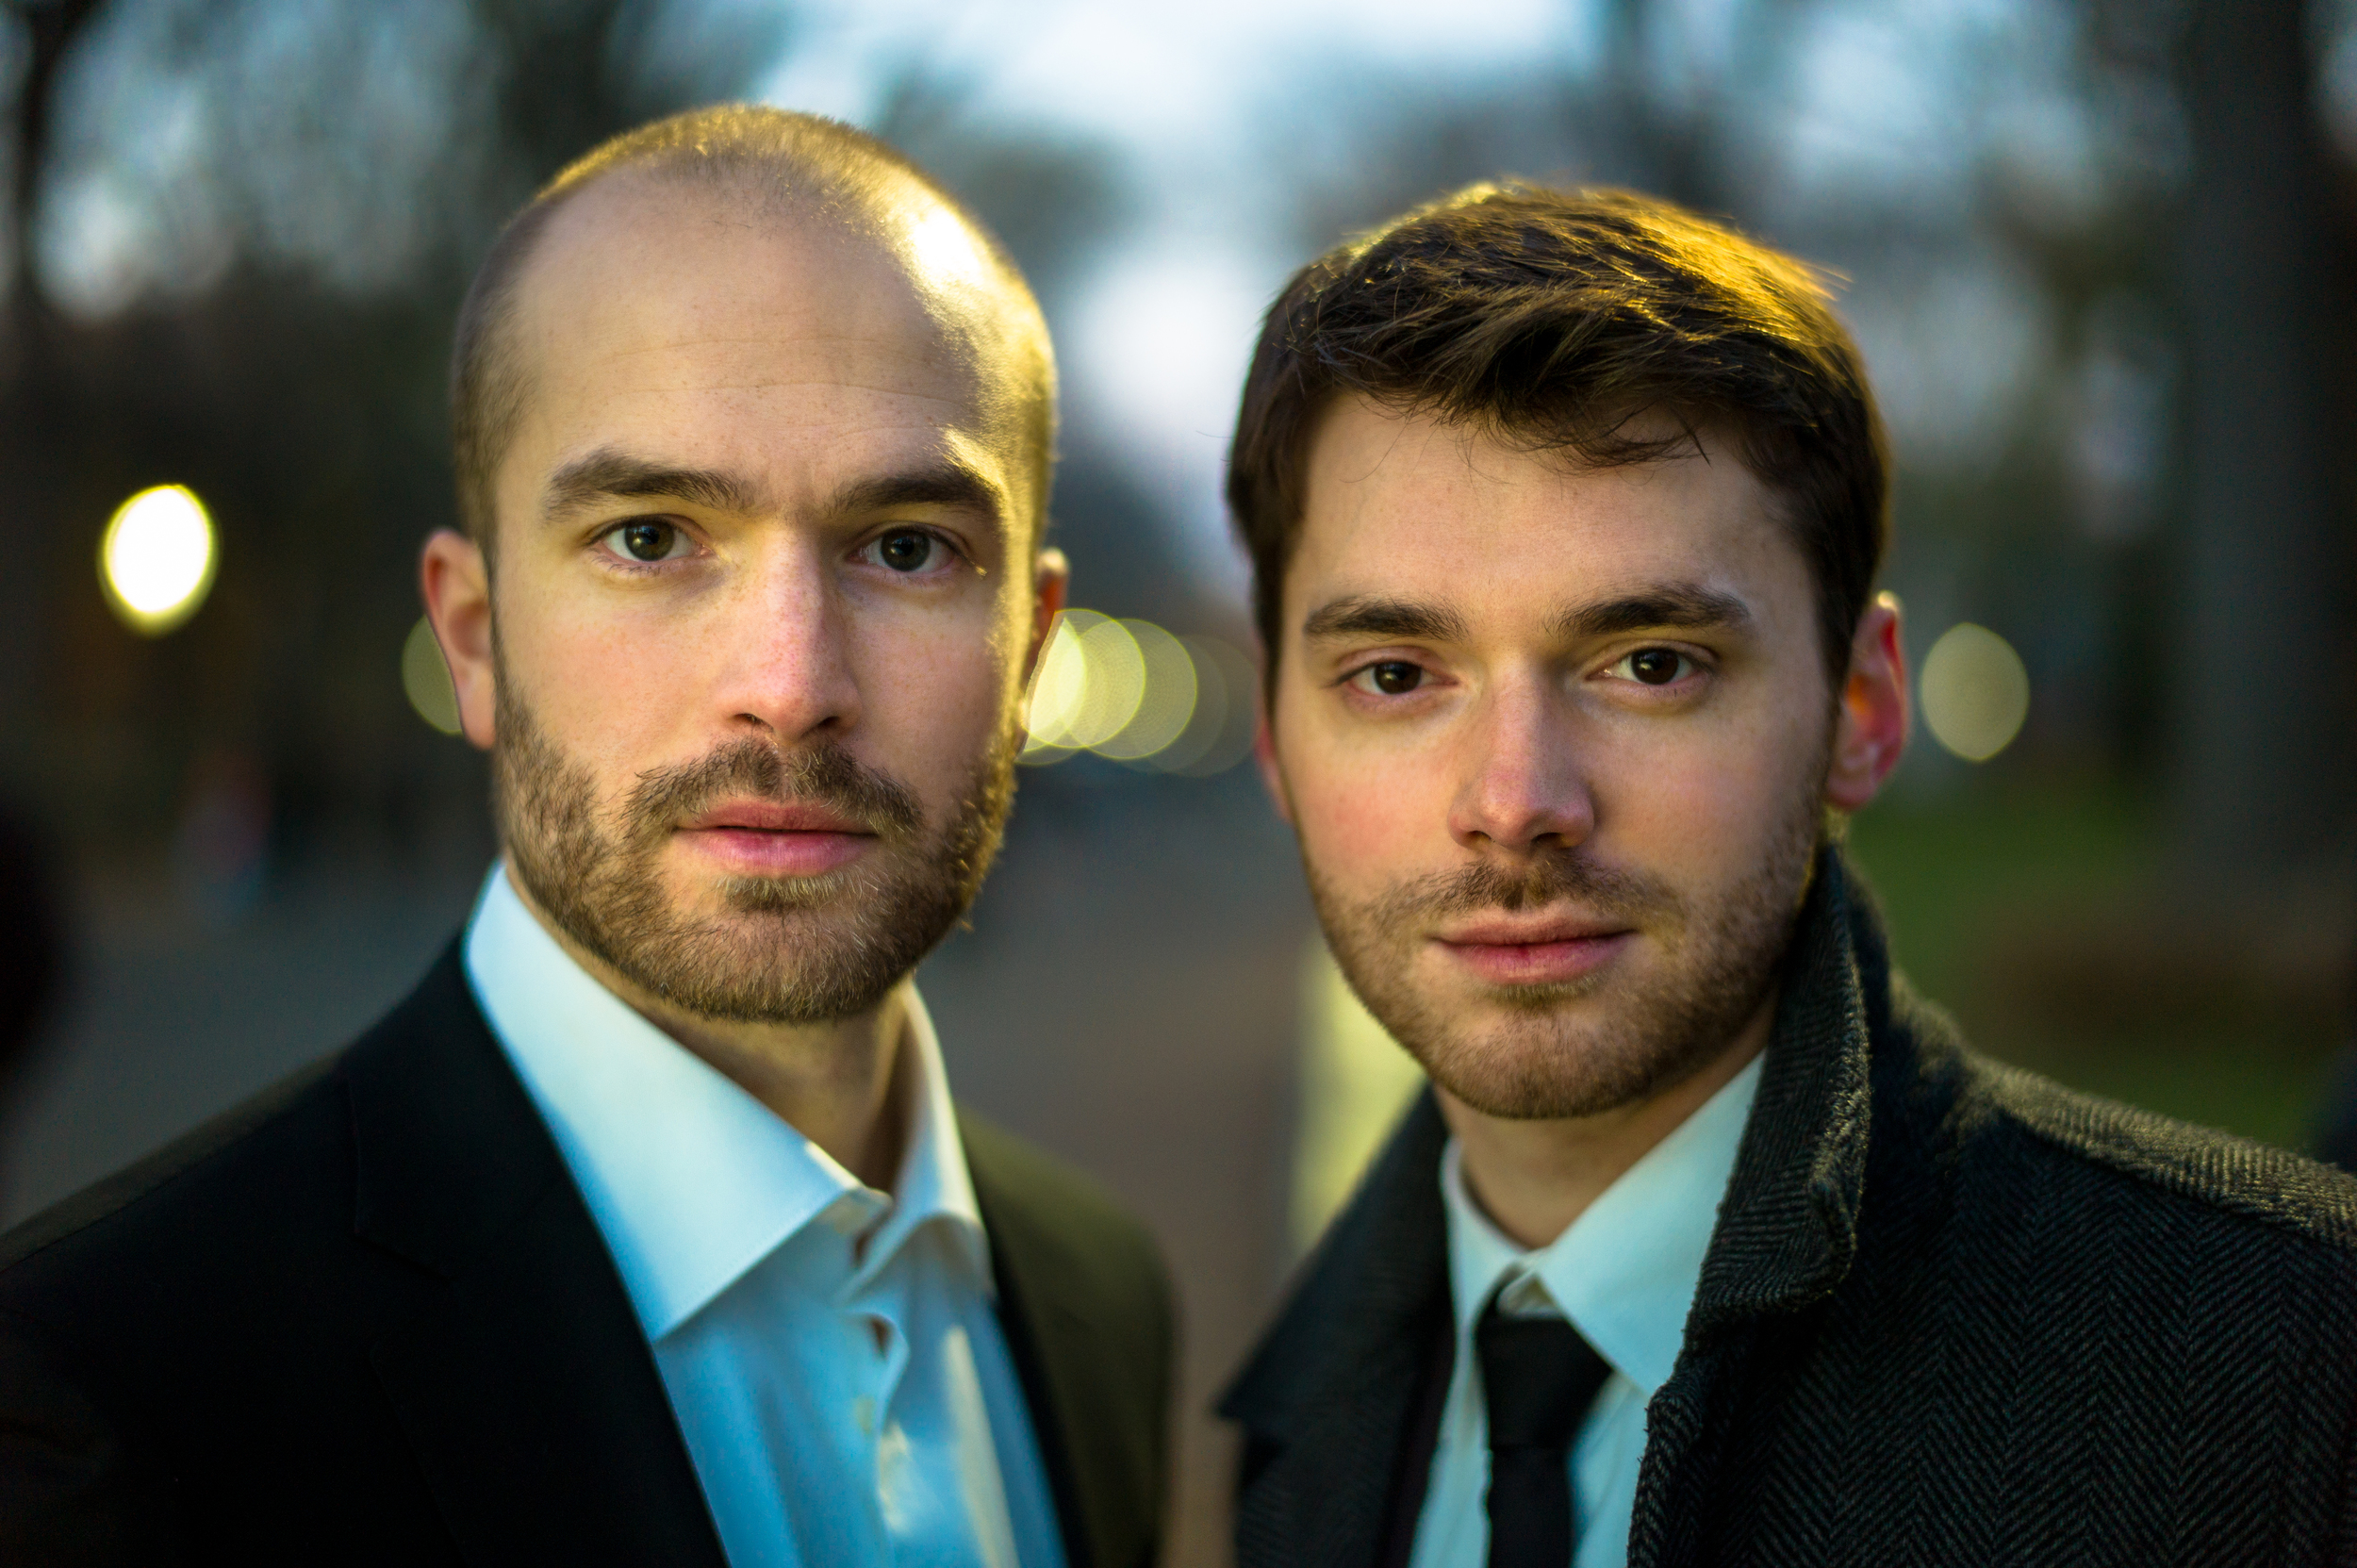 Baritone John Brancy and Pianist Peter Dugan, who will be featured in a recital of songs by the great composers of World War I on Thursday July 16 as part of the 2015 Summer Festival.